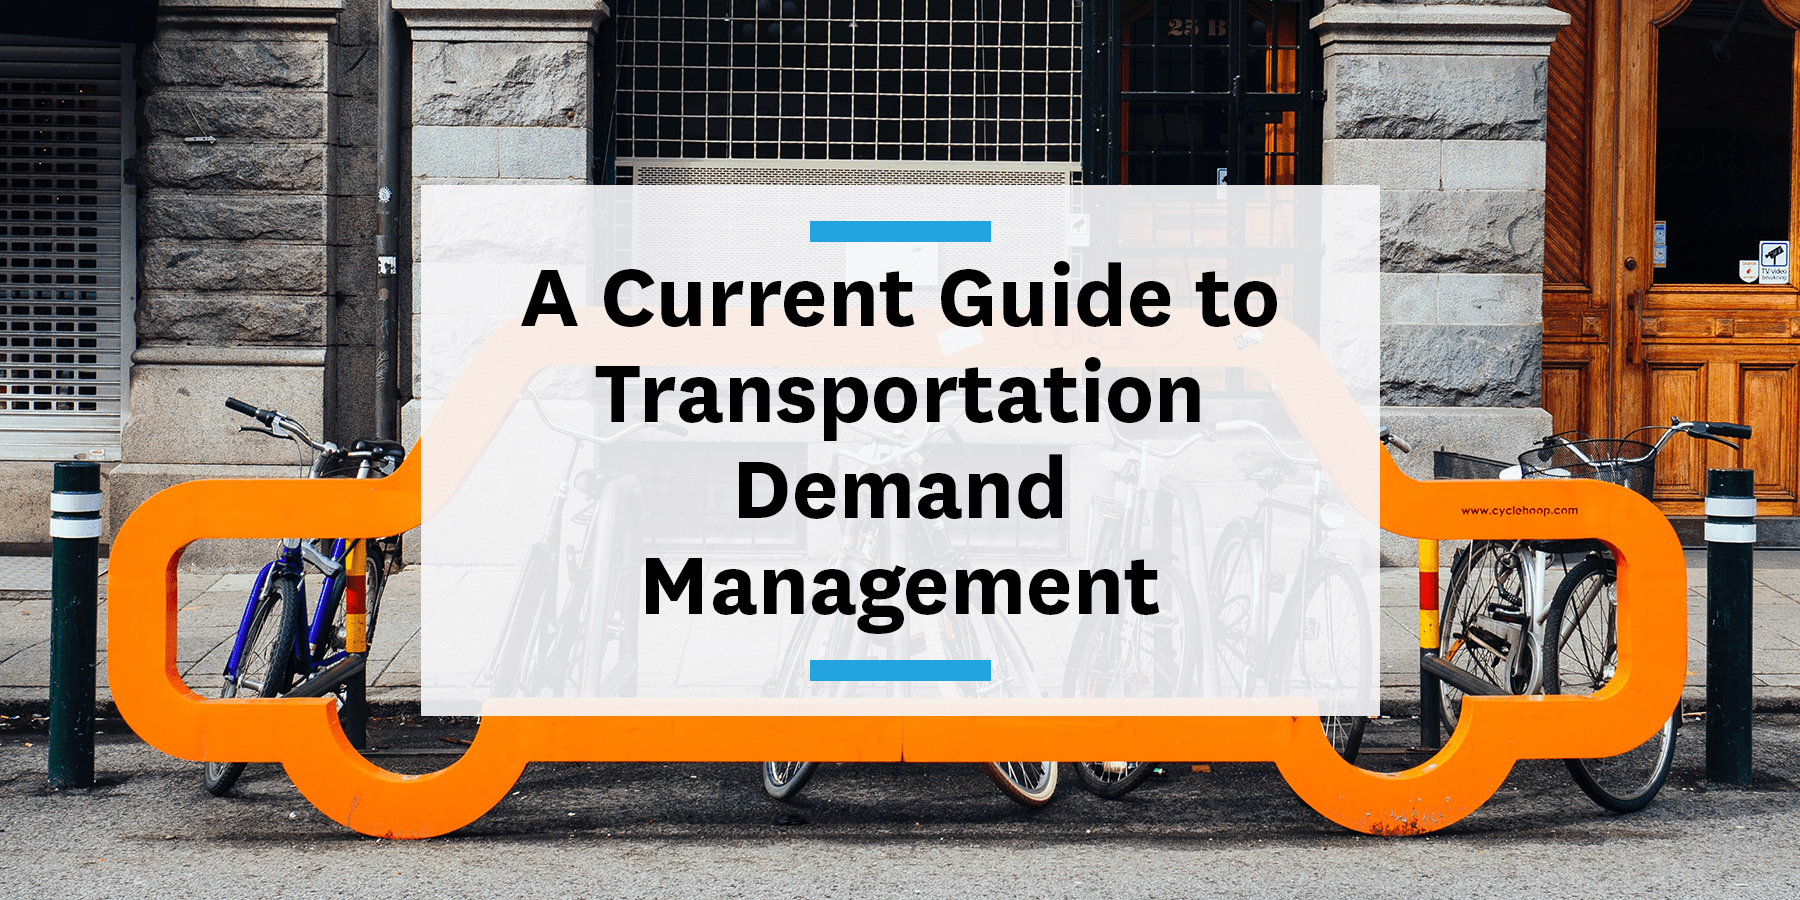 Feature image for the current guide to transportation demand management